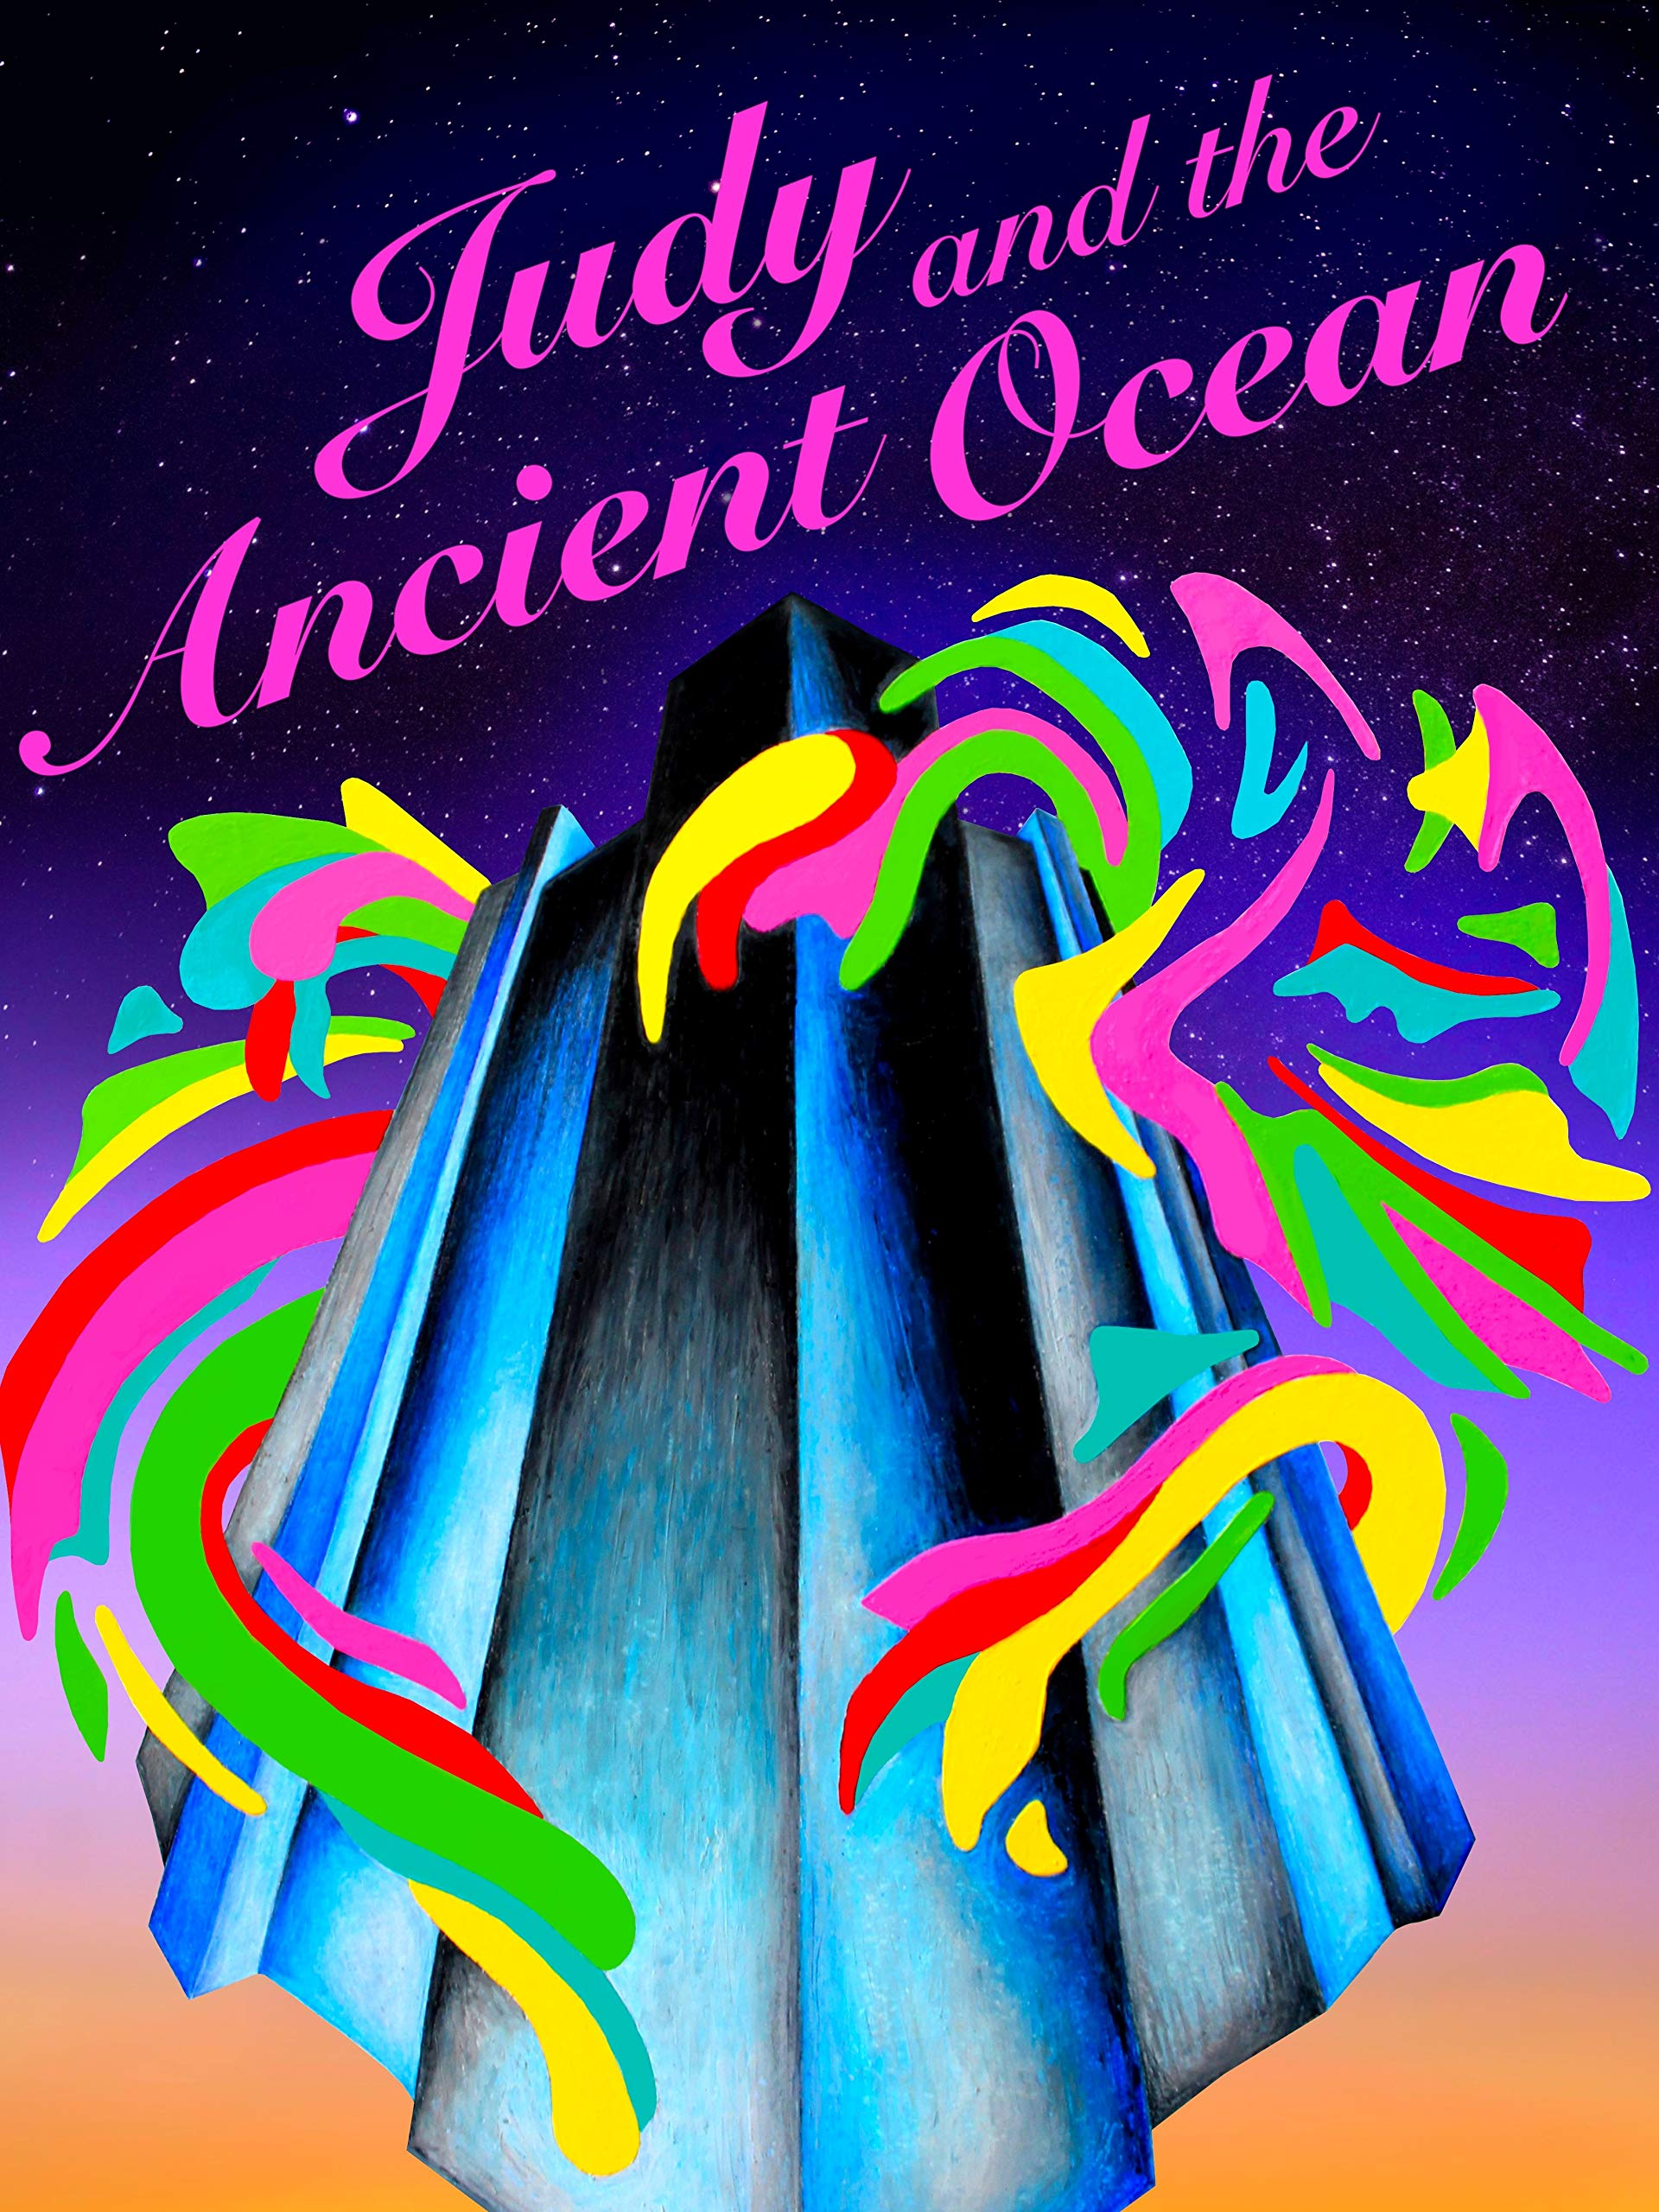 Judy and the Ancient Ocean